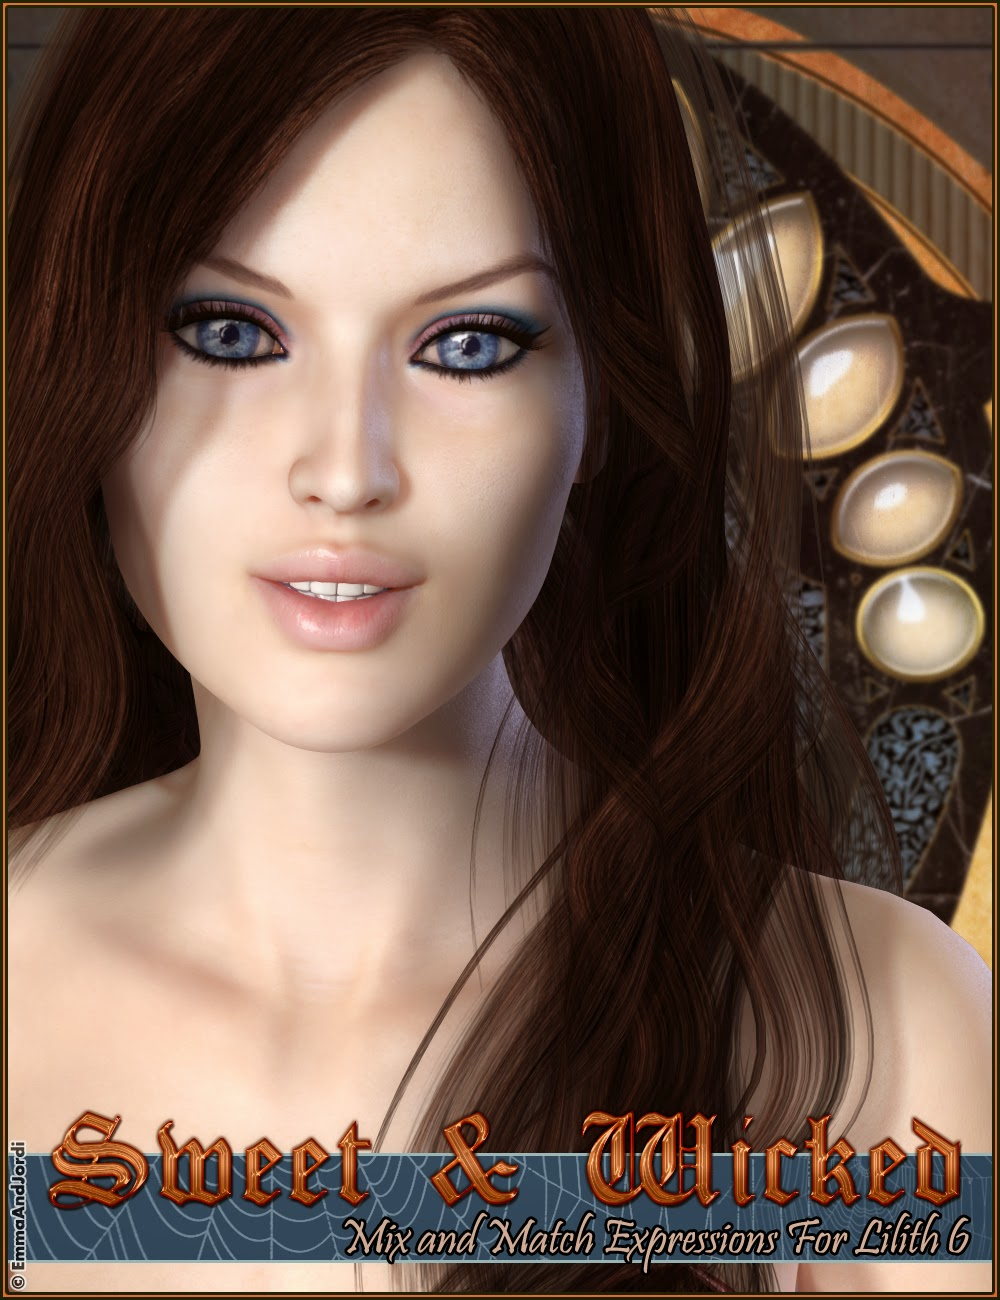 http://www.daz3d.com/sweet-and-wicked-mix-and-match-expressions-for-lilith-6